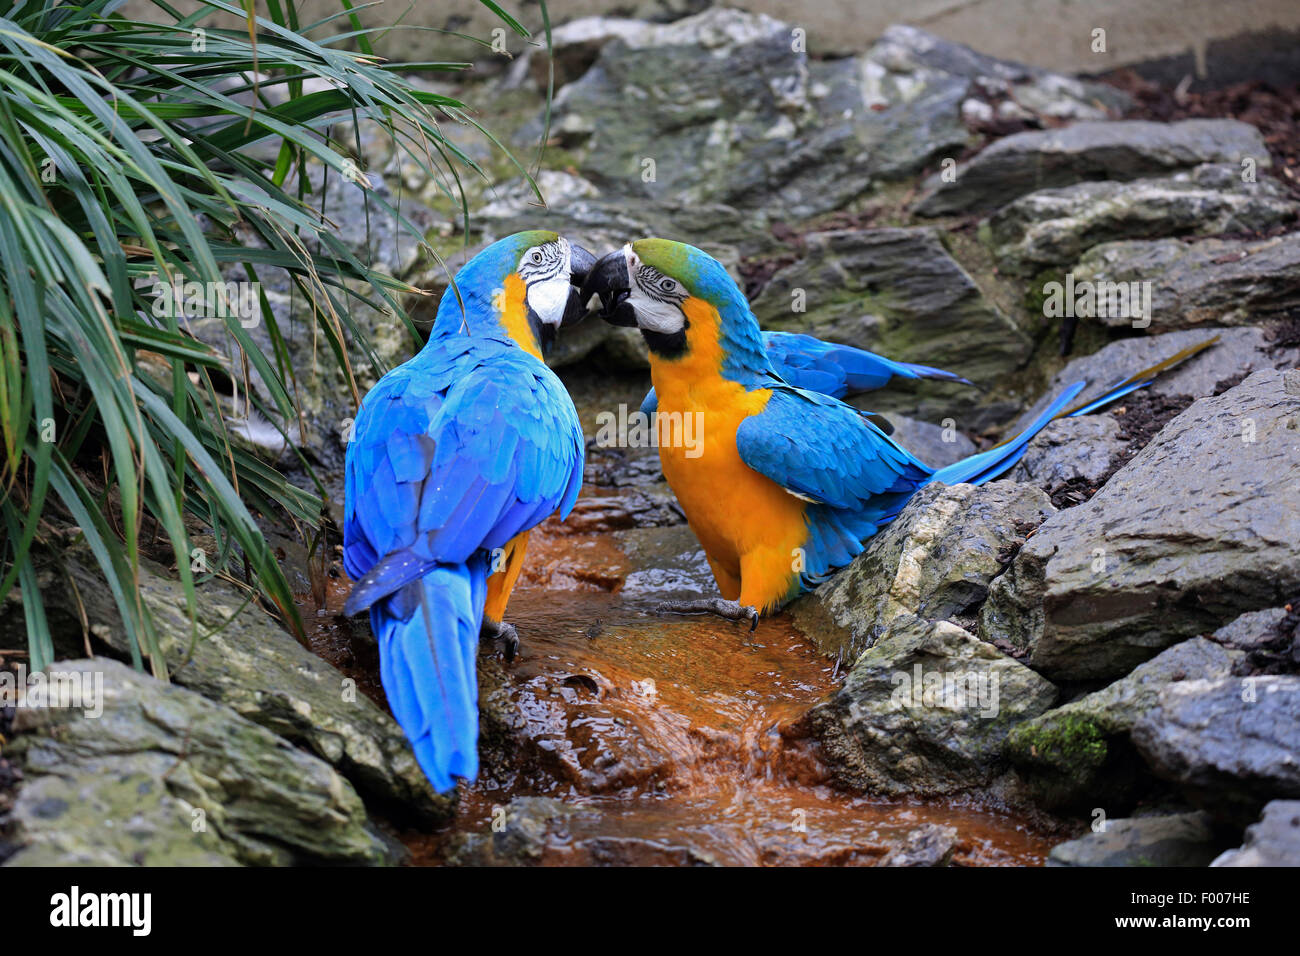 Blue and yellow macaw, Blue and gold Macaw, Blue-and-gold Macaw, Blue-and-yellow Macaw (Ara ararauna), pair - Stock Image